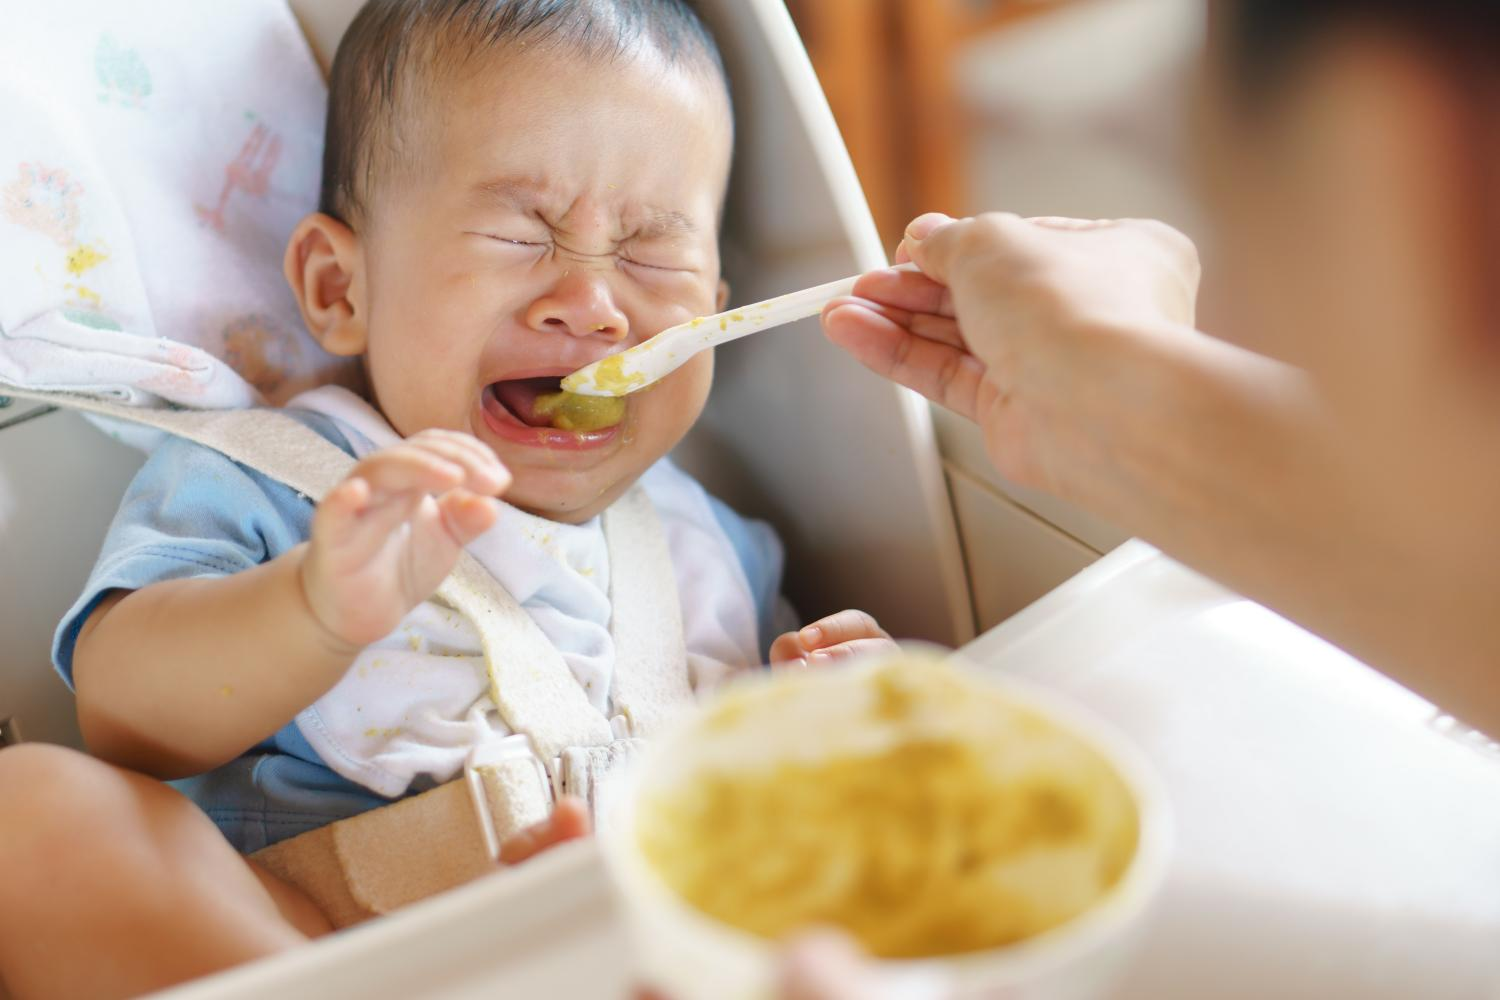 Overcoming feeding aversion in infants through occupational therapy